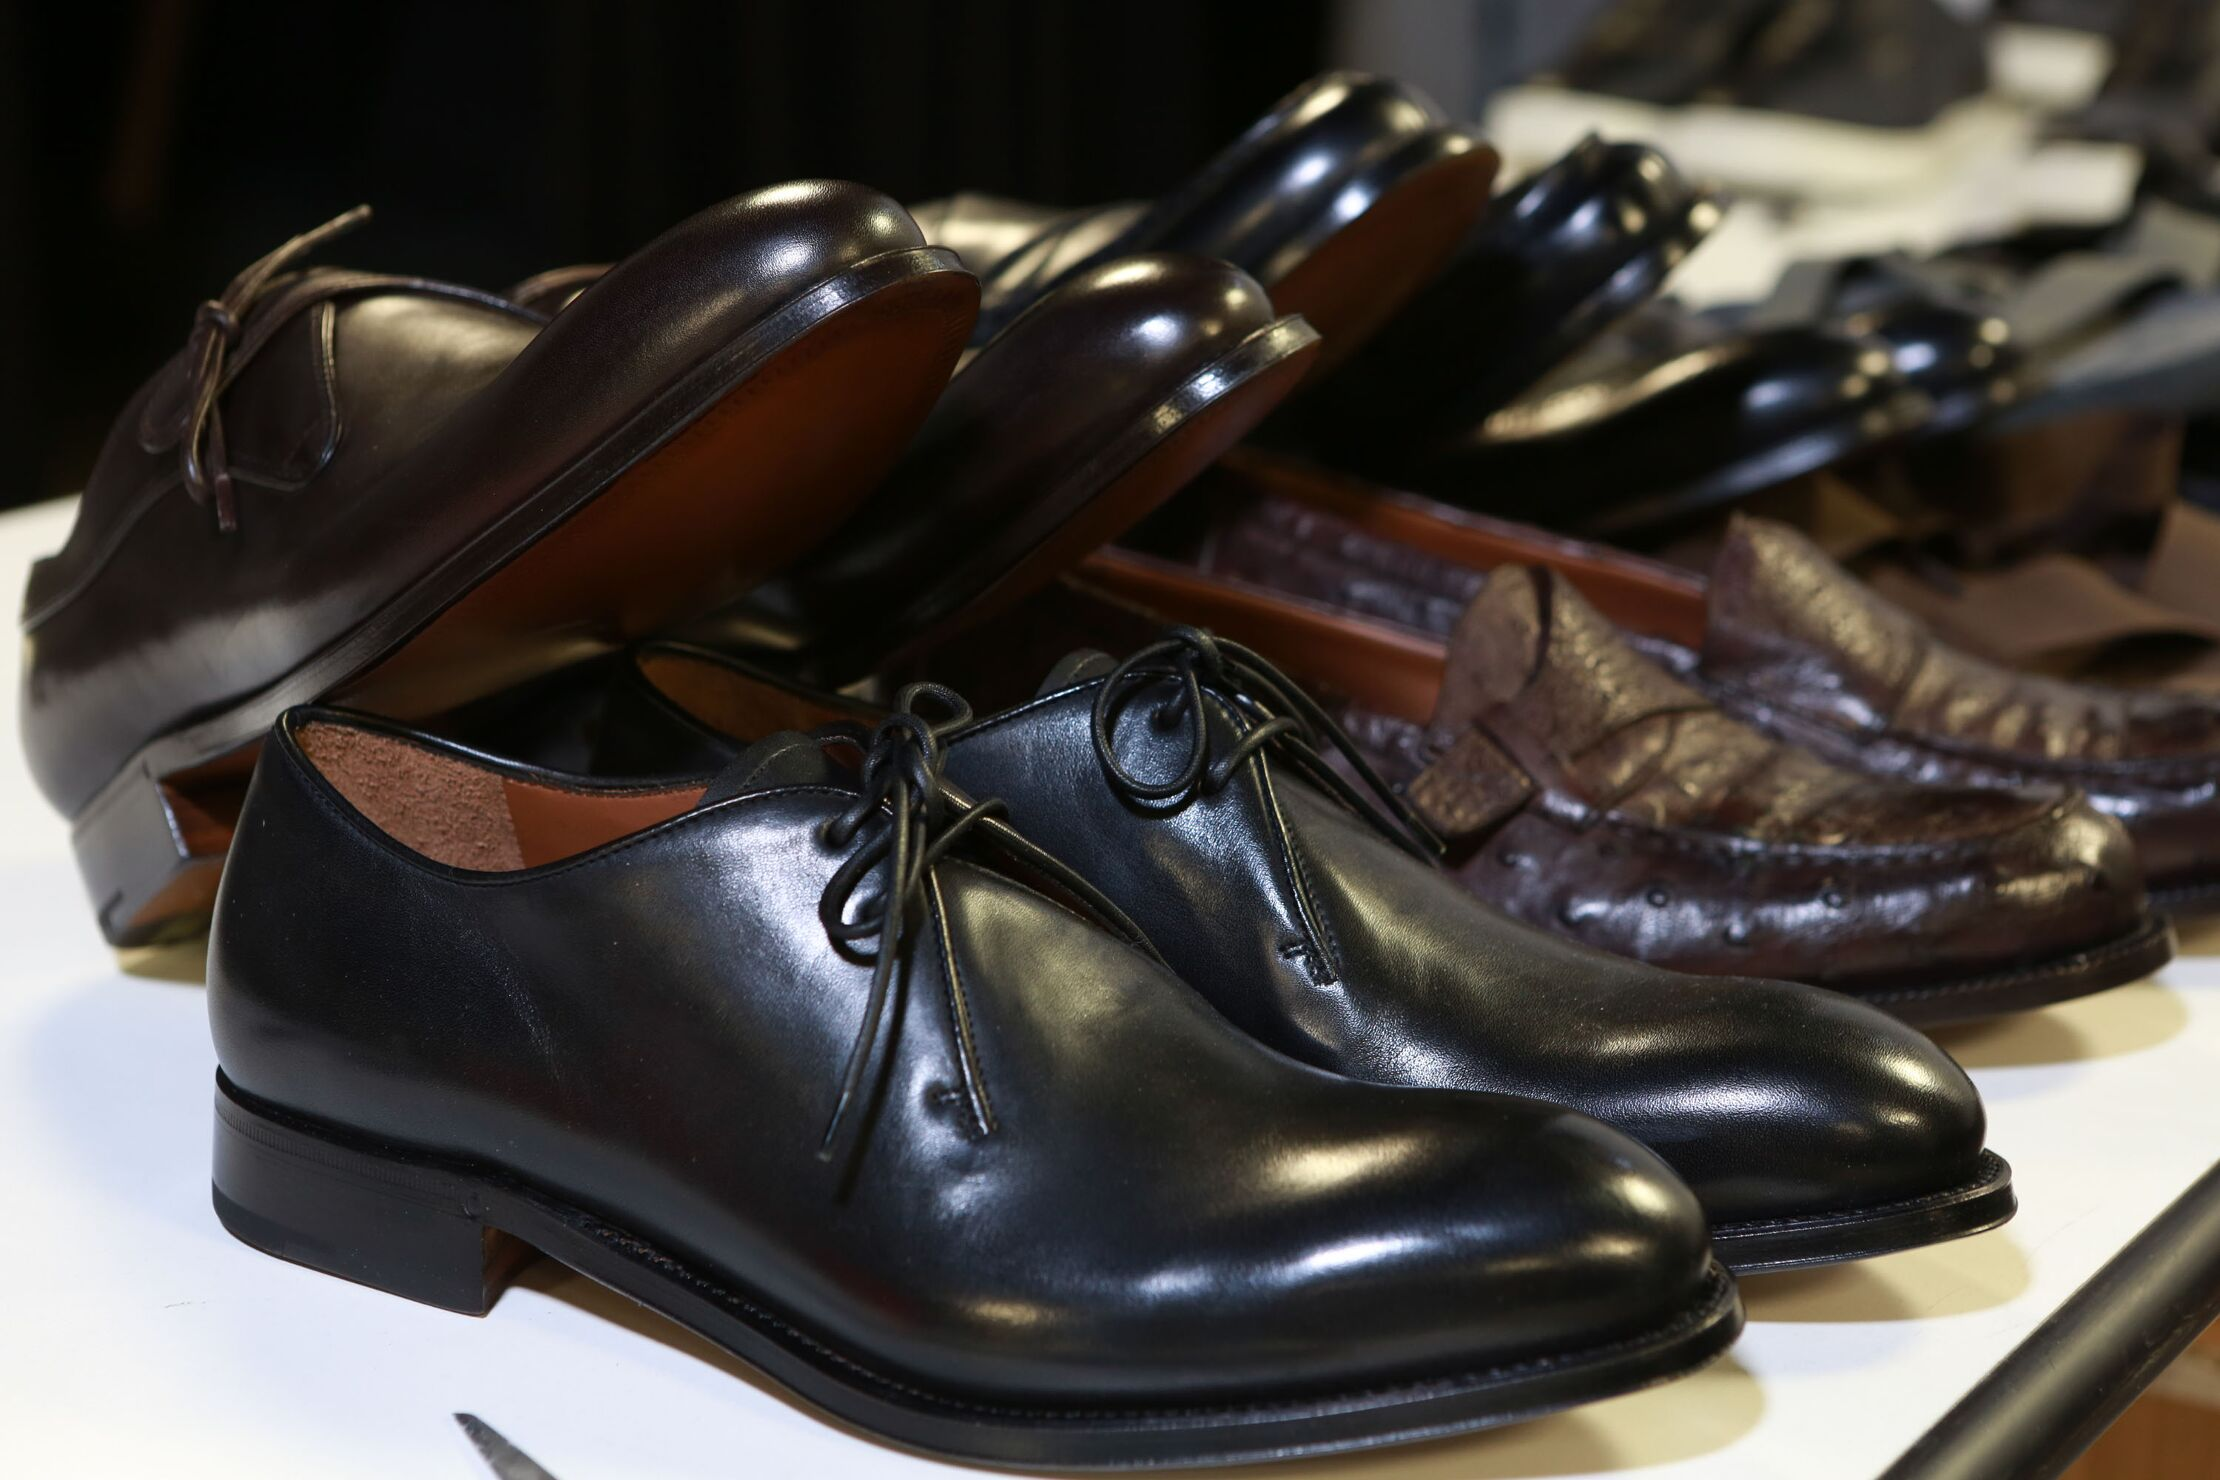 Backstage Ermenegildo Zegna Couture Shoes